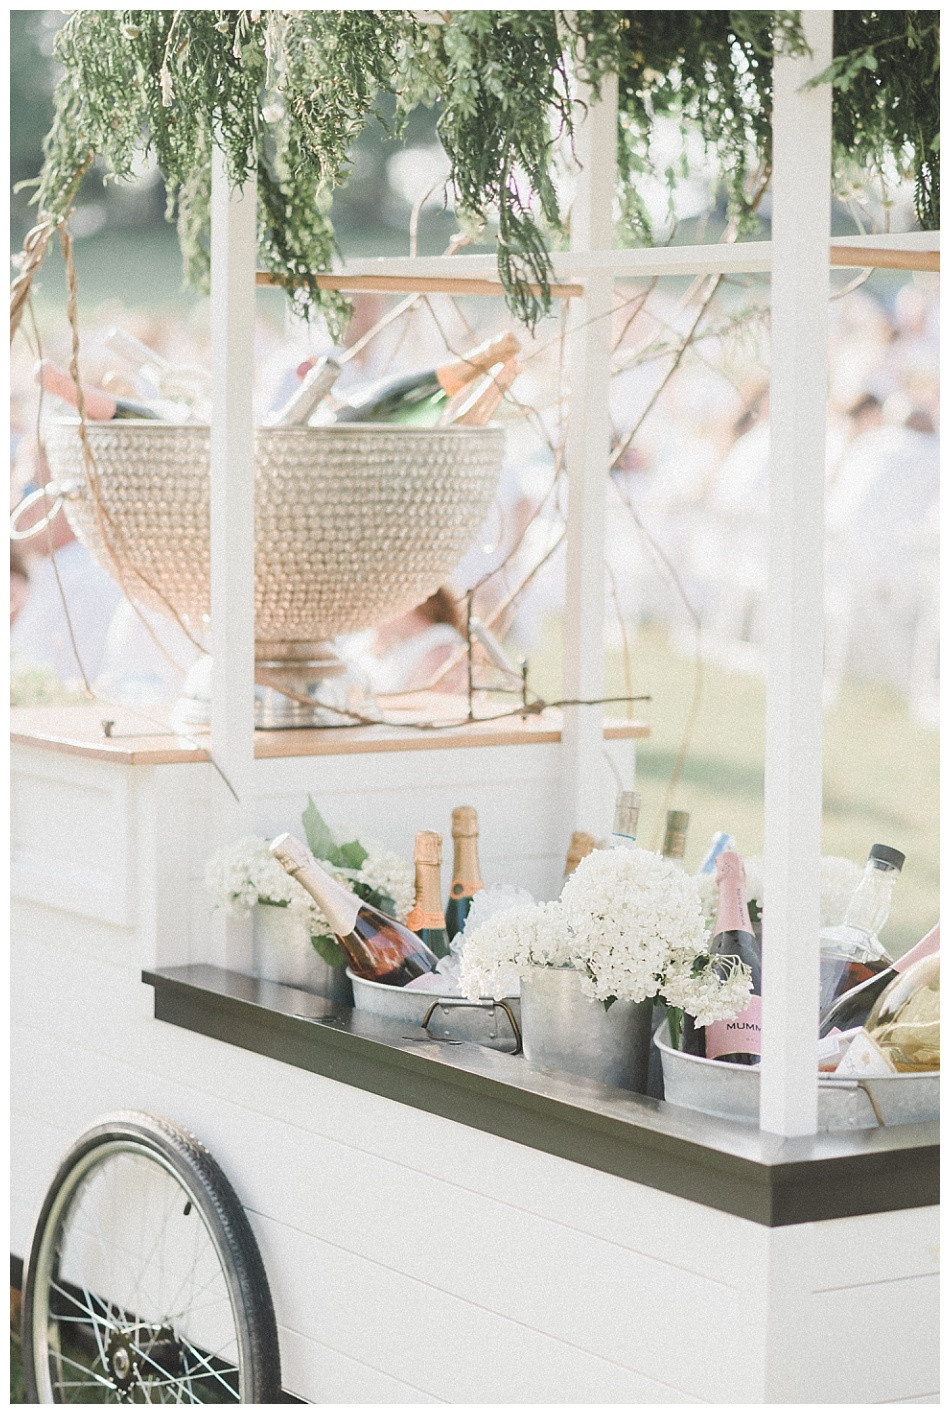 Pollinate Floral Cart, Champagne, and Wine Buckets. Fete en Blanc (Party in White) Lancaster 2019 at Longs Park by Angela Weiler Photography - Fine Art Wedding and Lifestyle Photographer in Lancaster Pennsylvania.